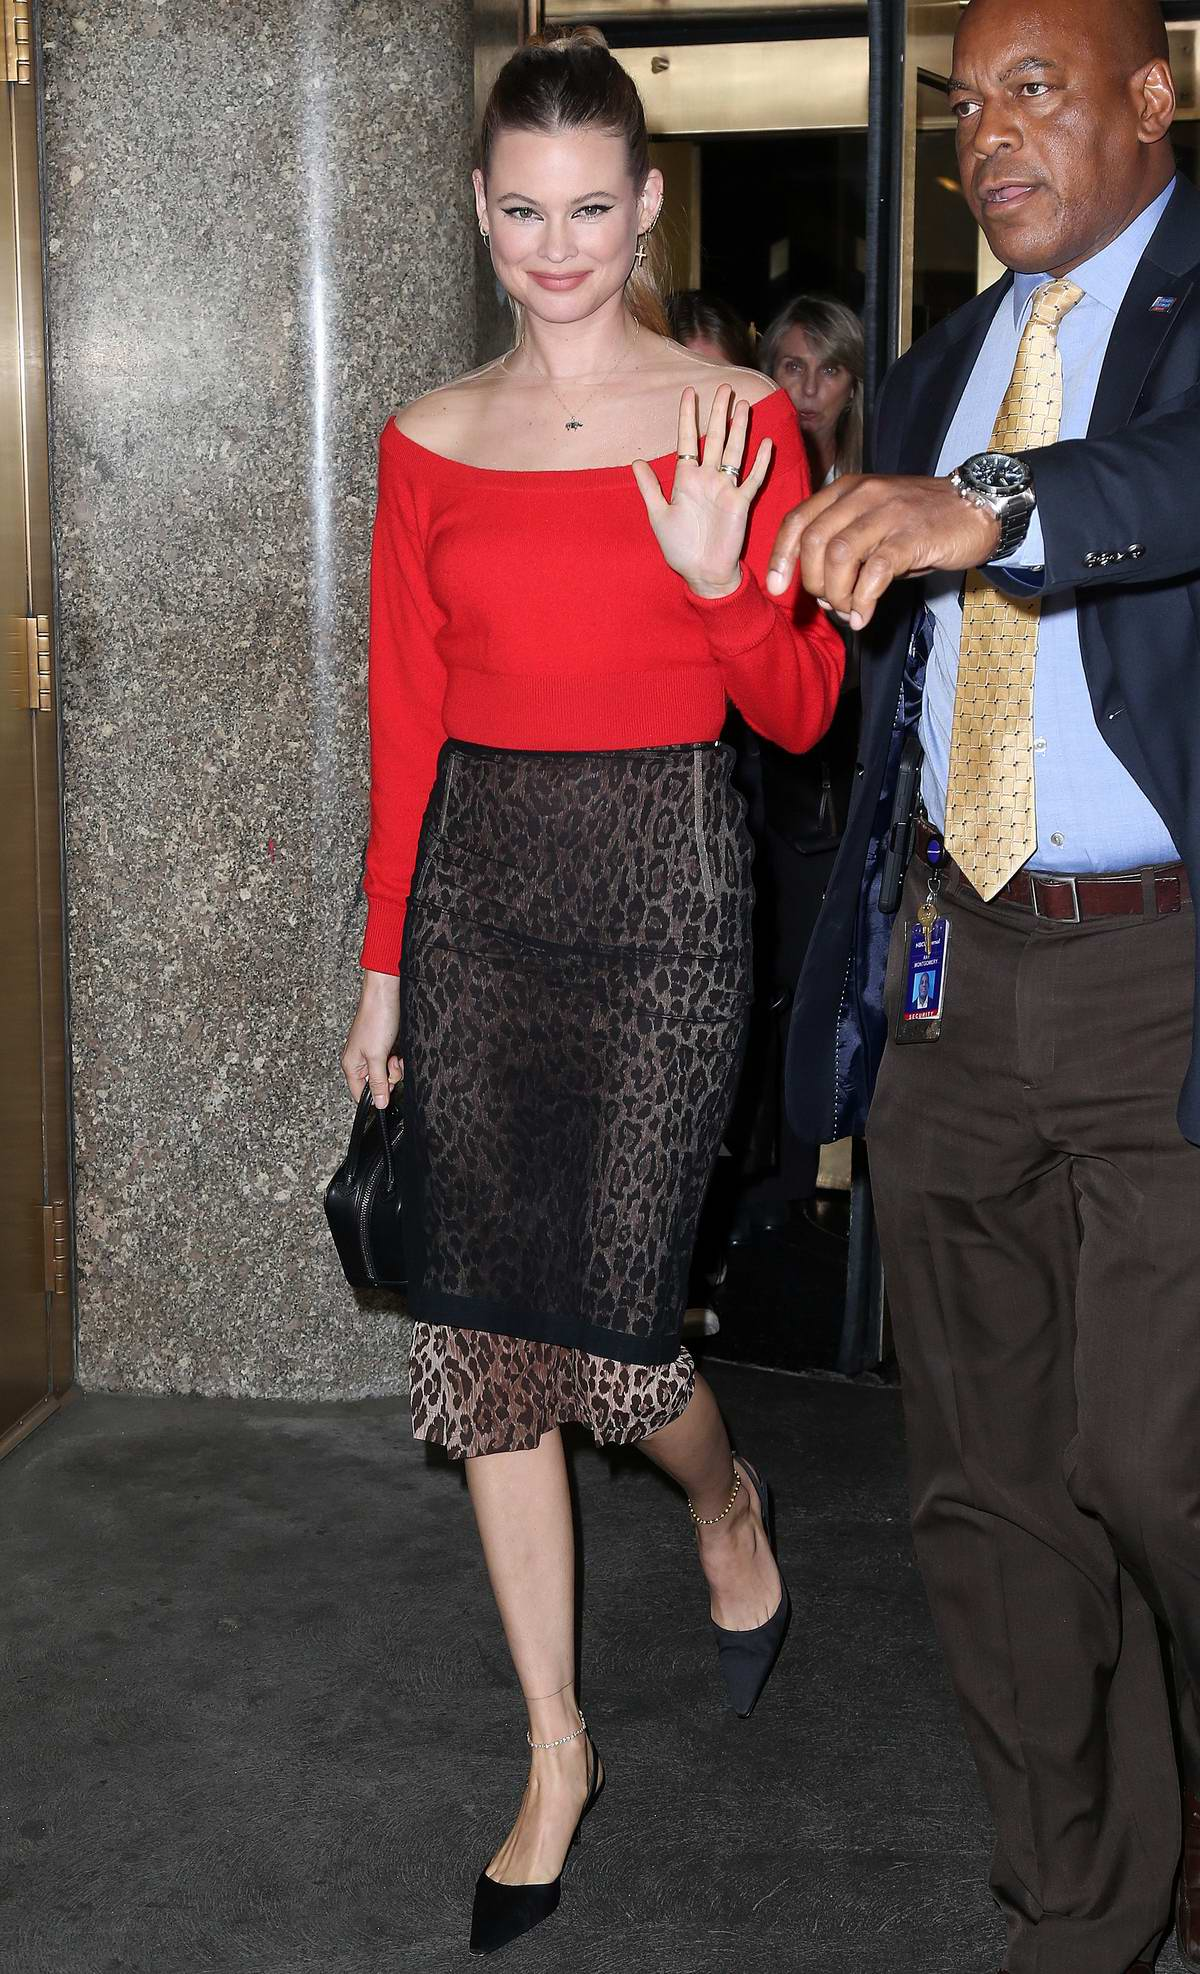 Behati Prinsloo visits 'Access Hollywood Live' TV show in New York City